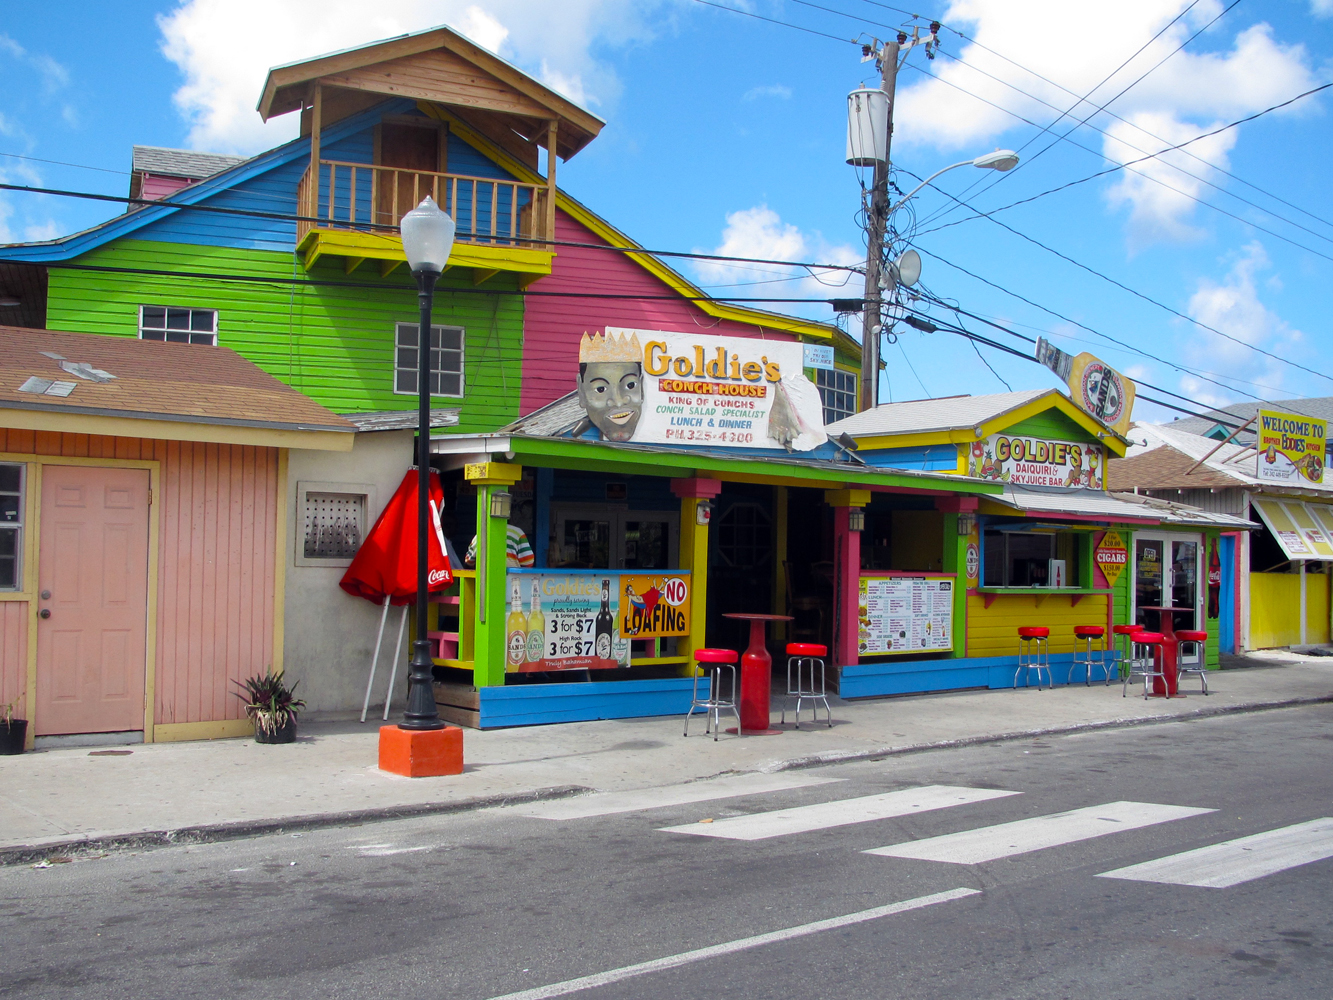 Goldie's restaurant at the Fish Fry in Arawak Cay, Nassau, Bahamas.